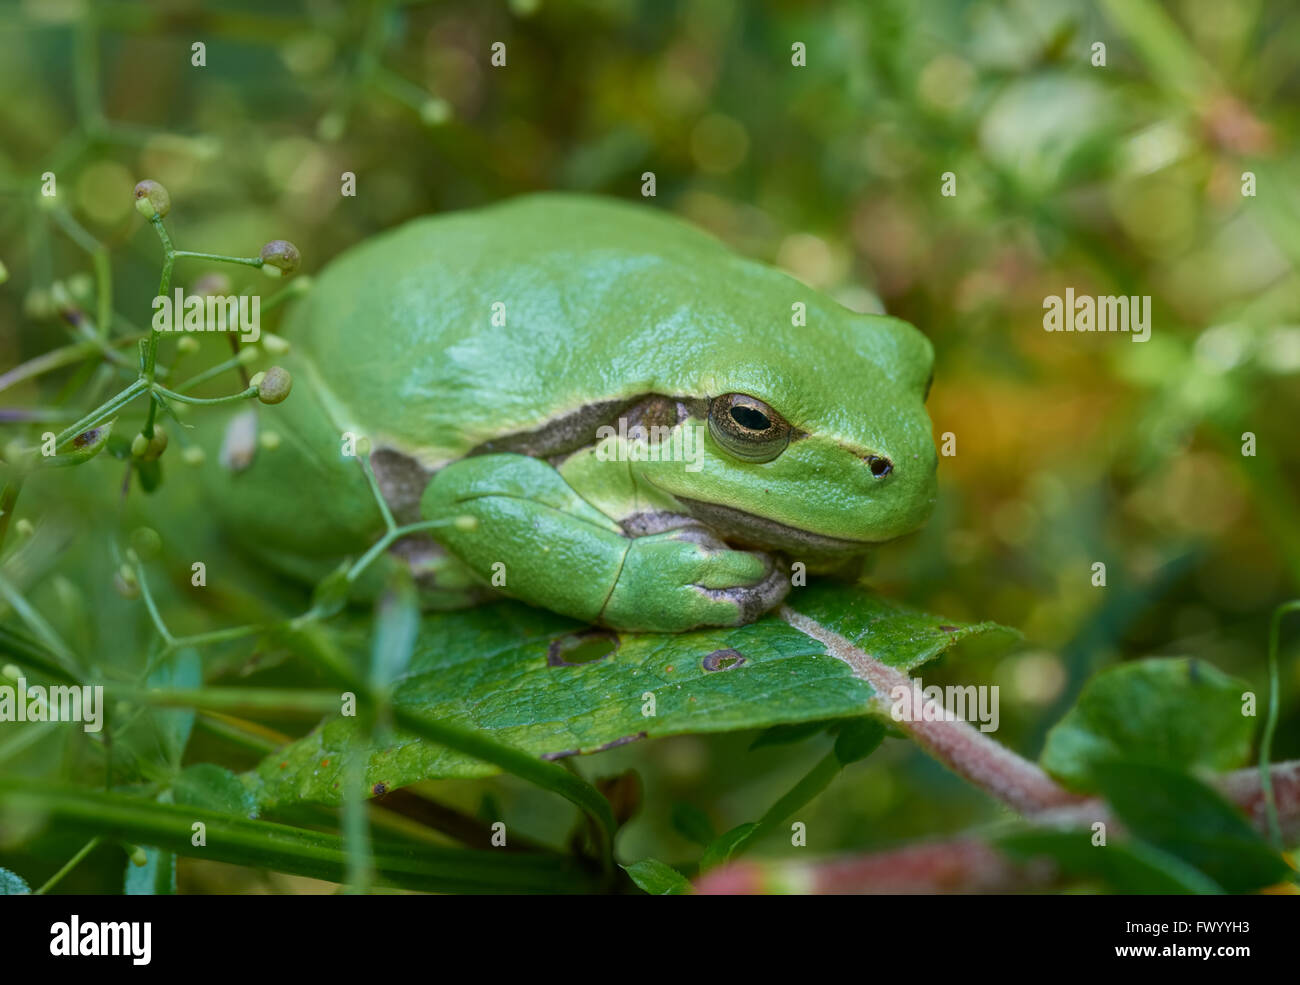 Close up d'Hyla arborea) assis sur une feuille verte Photo Stock